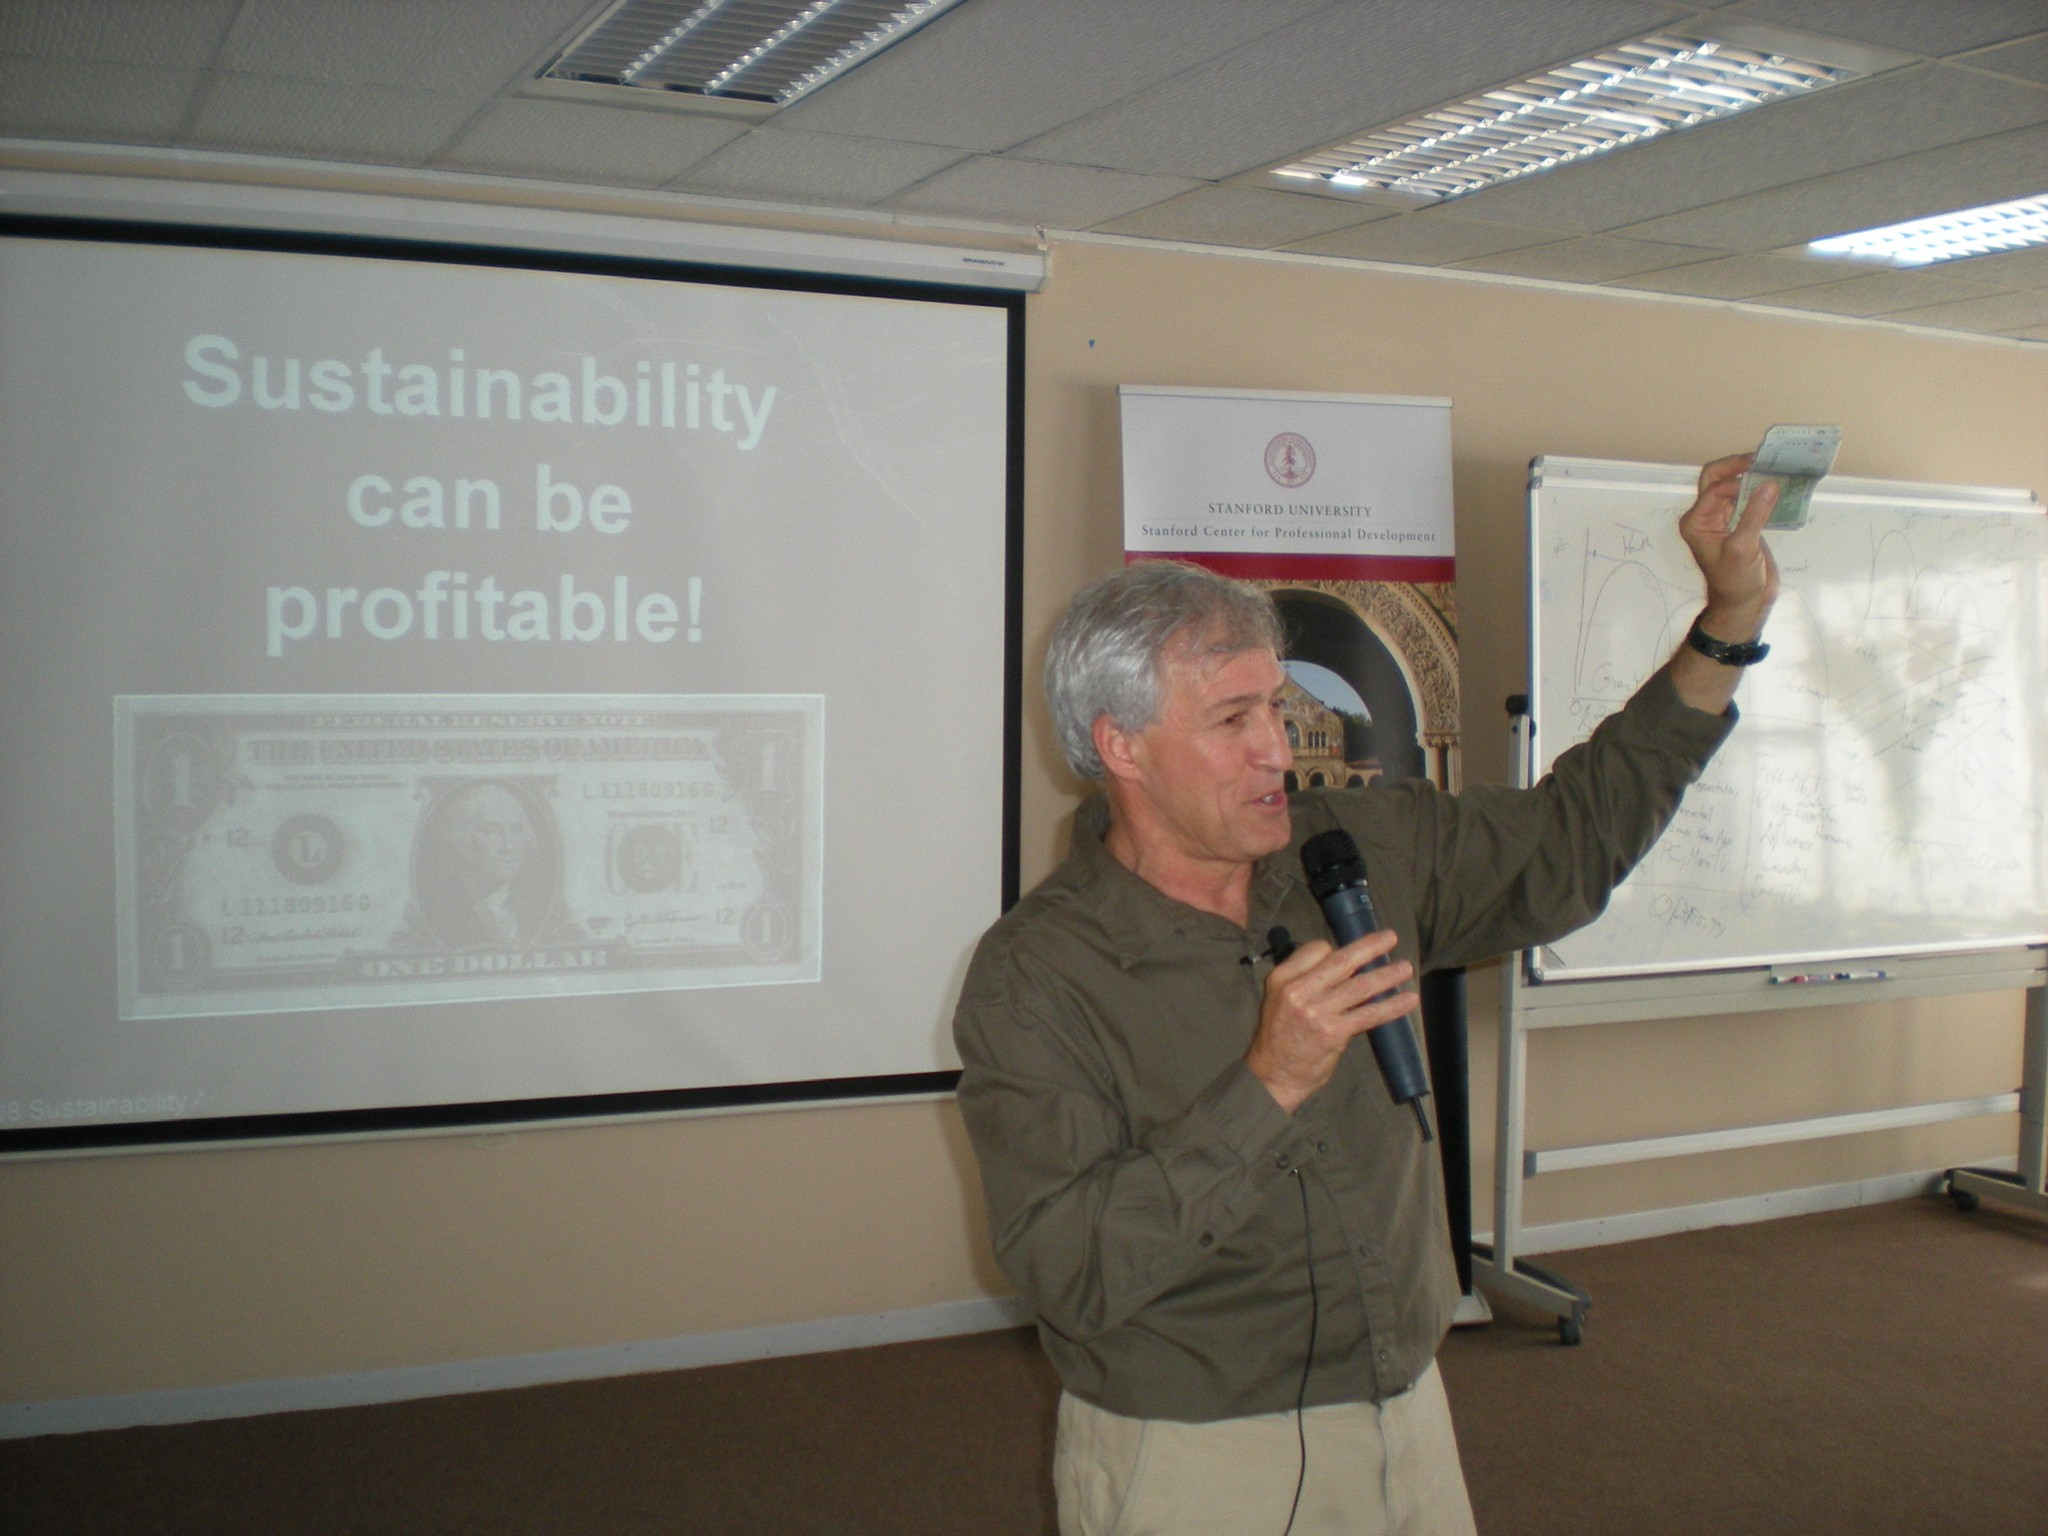 """Terry Gips giving a presentation titled """"Sustainability can be profitable!"""""""